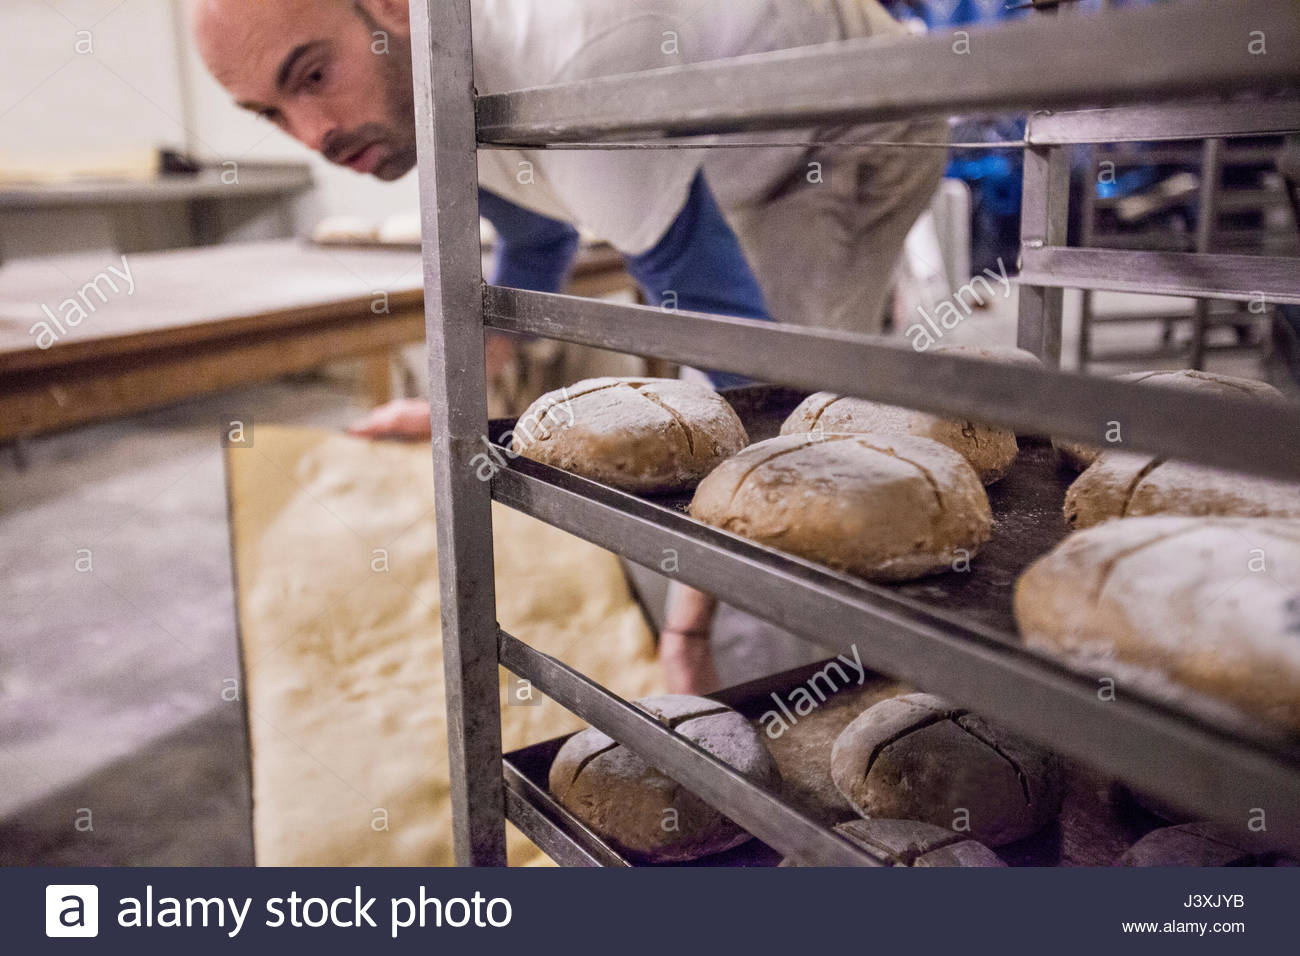 Baker putting tray of dough into rack in bakery - Stock Image